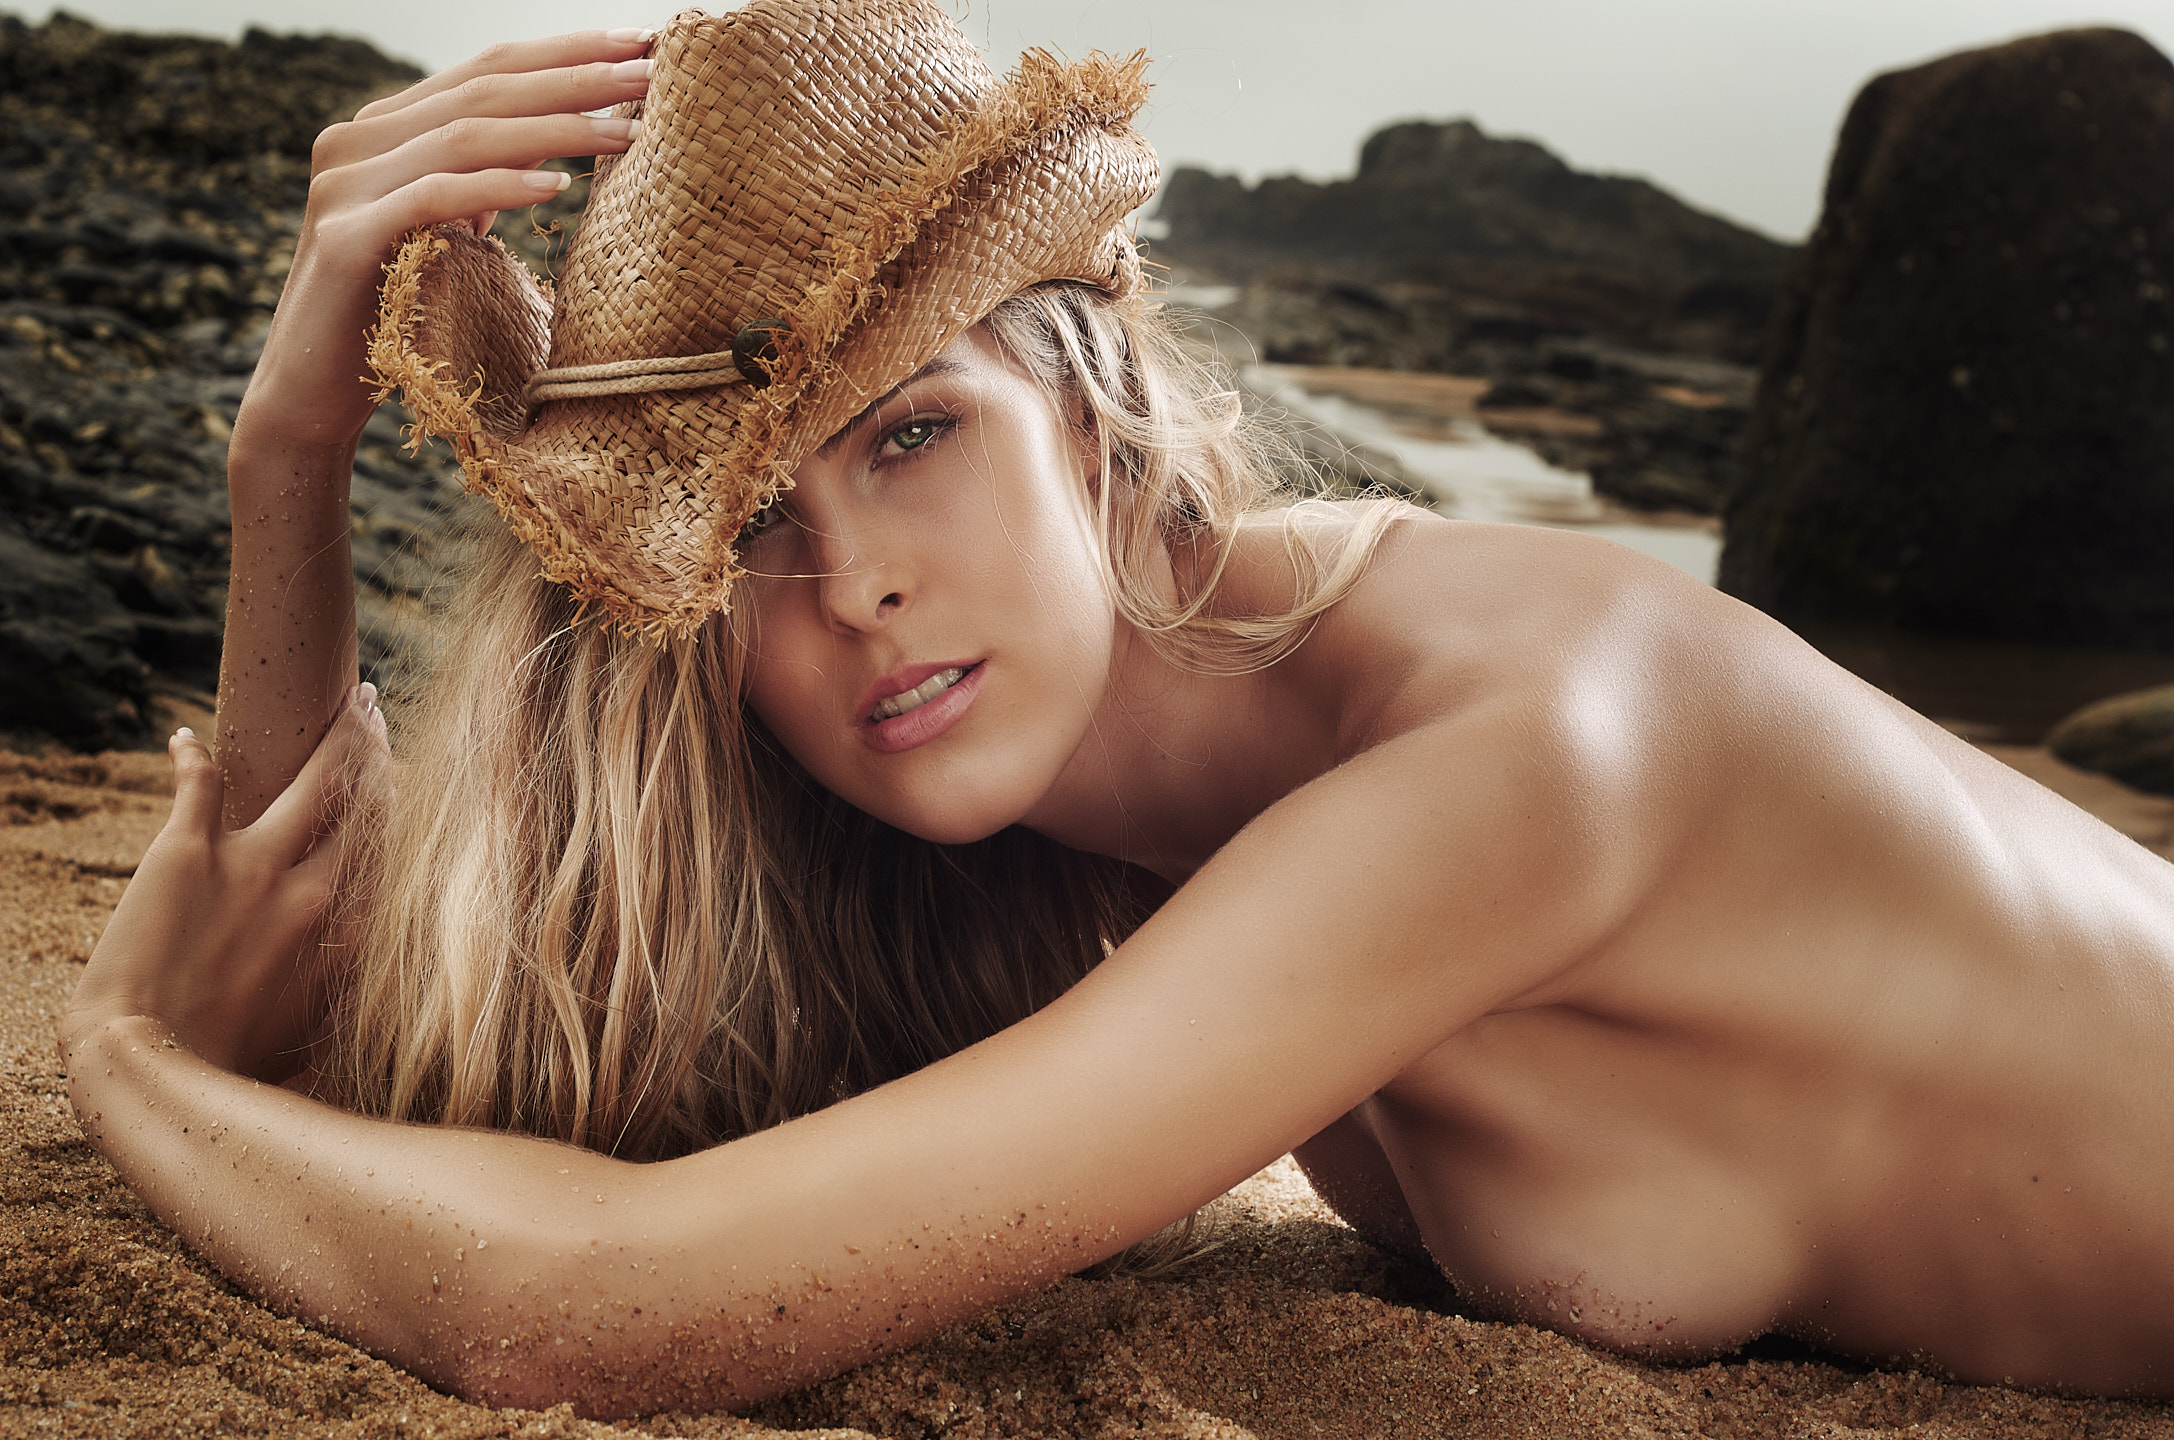 swimwear-model-topless-hat-beach-fashion-portrait